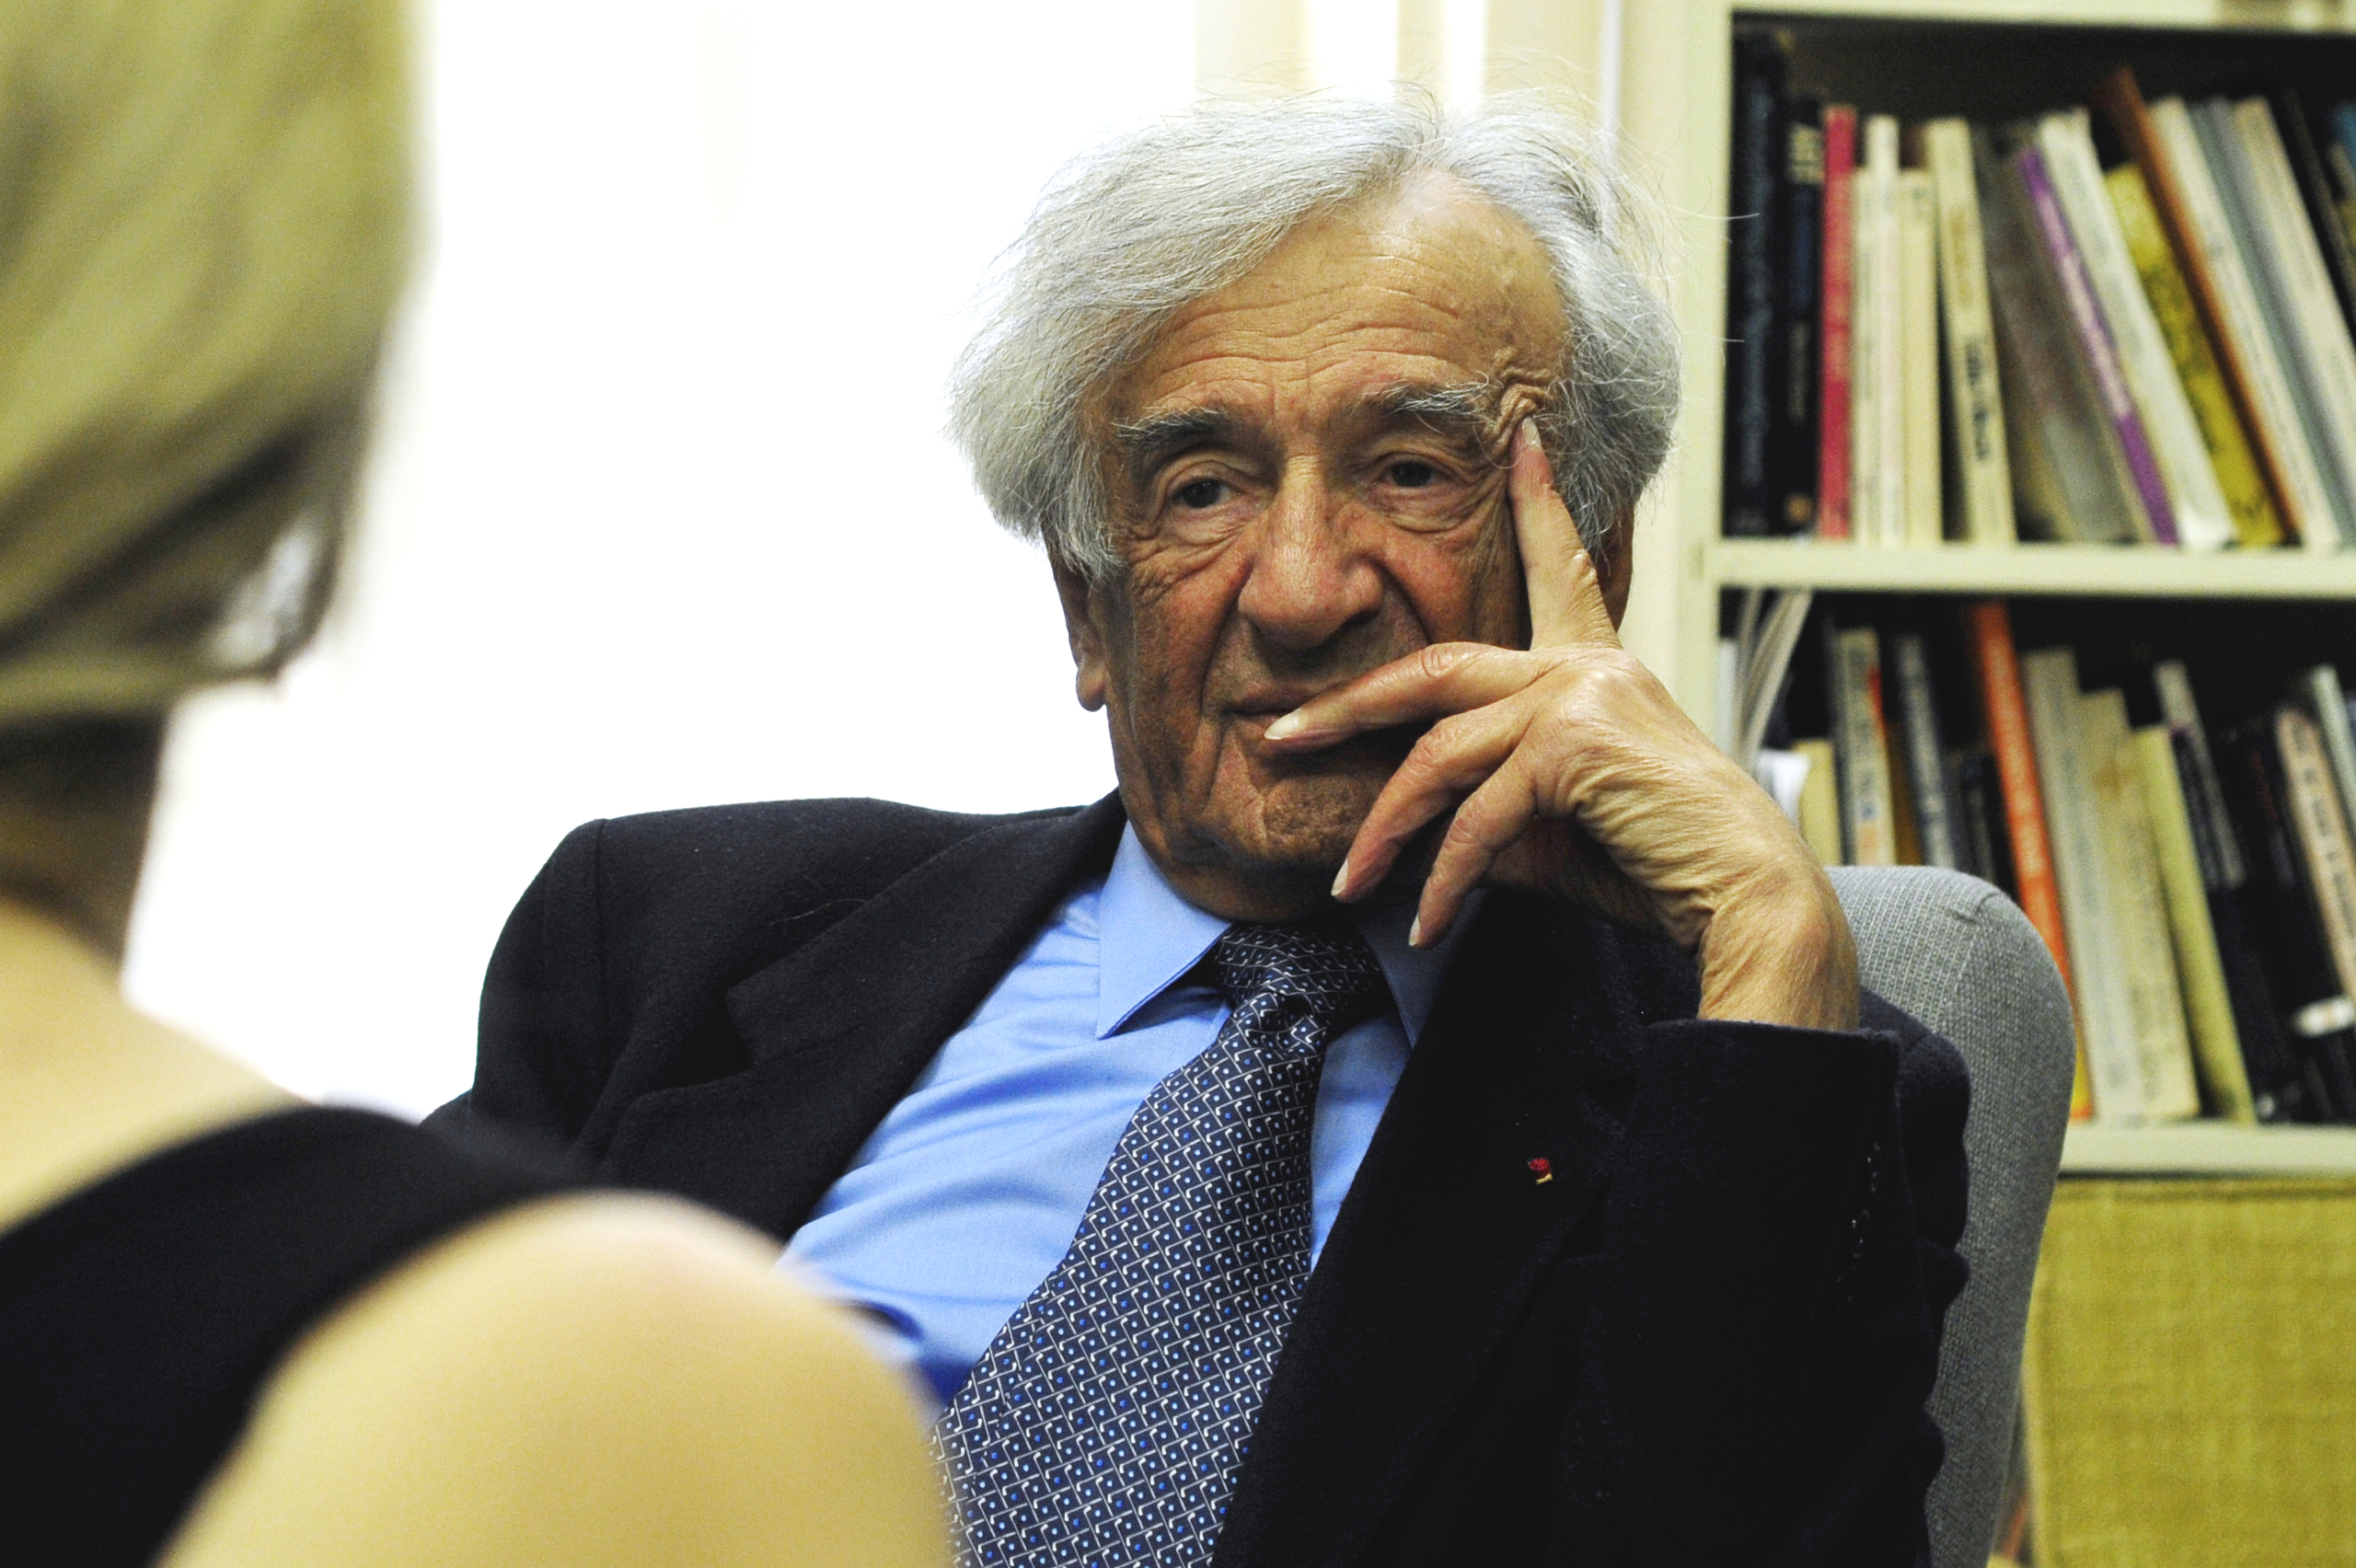 Heart To Heart With Elie Wiesel